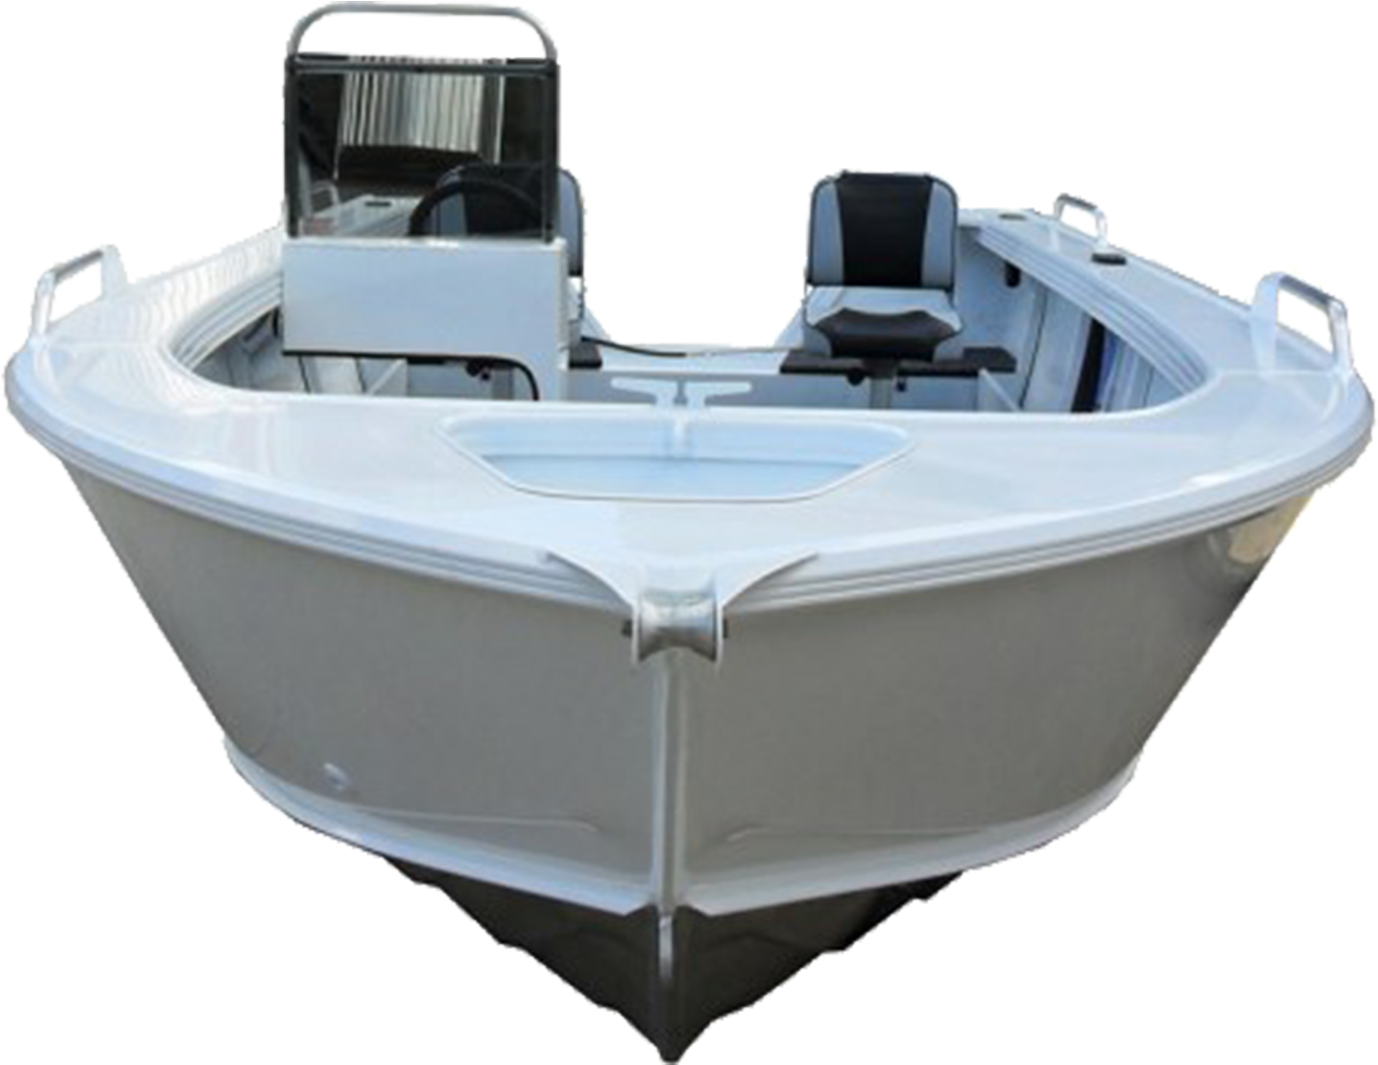 Go To Image - Front Of Boat Png Clipart - Large Size Png ...